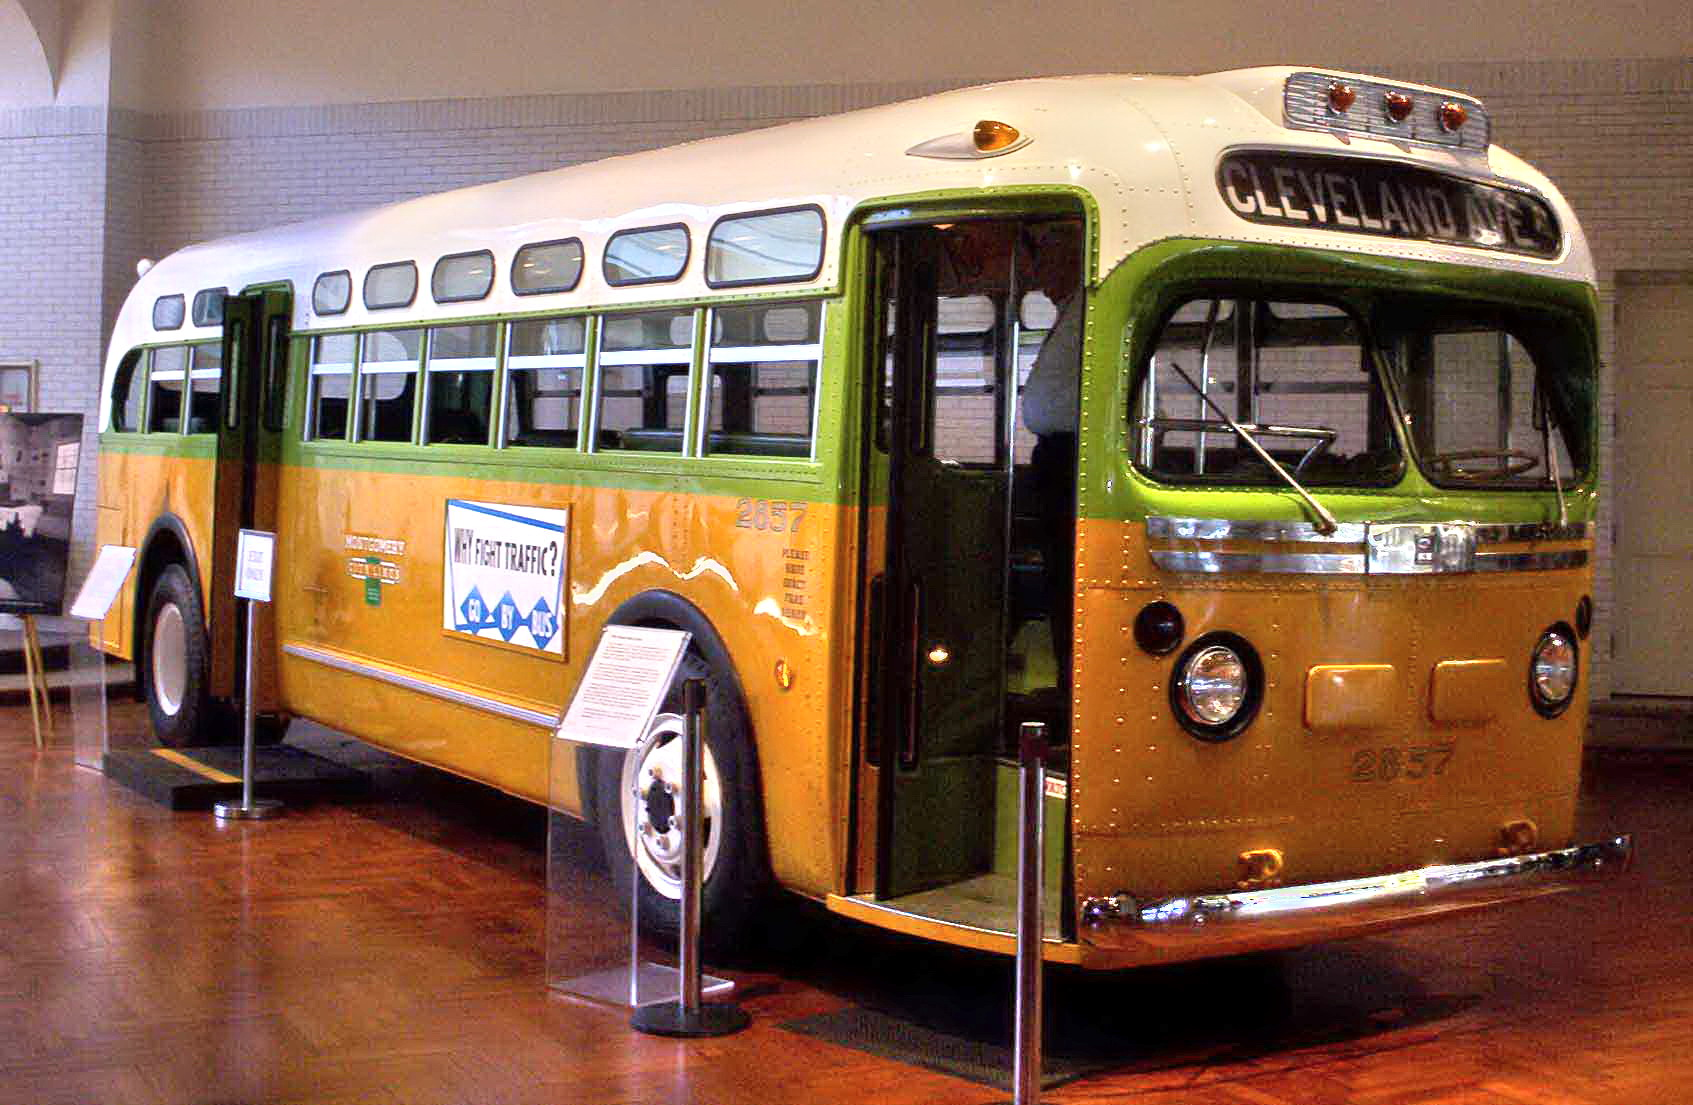 Bus on which Rosa Parks Refused to Give Up Her Seat